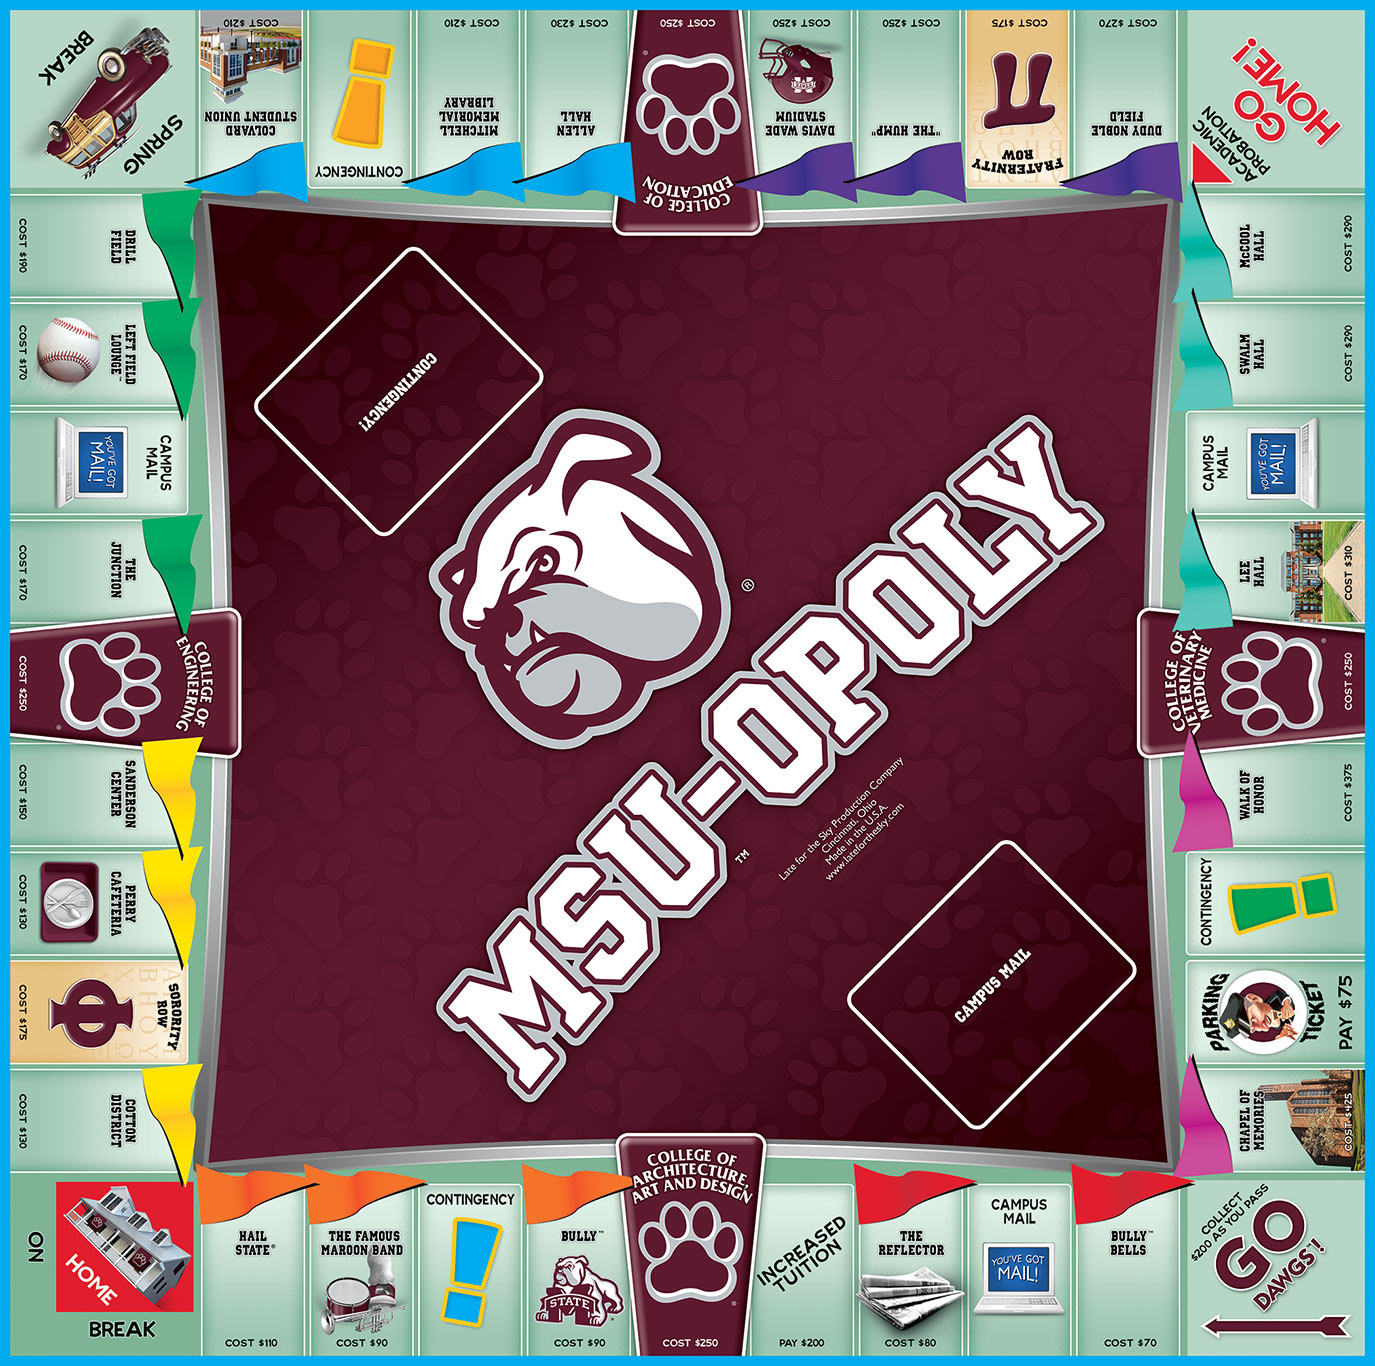 MSU-OPOLY Board Game